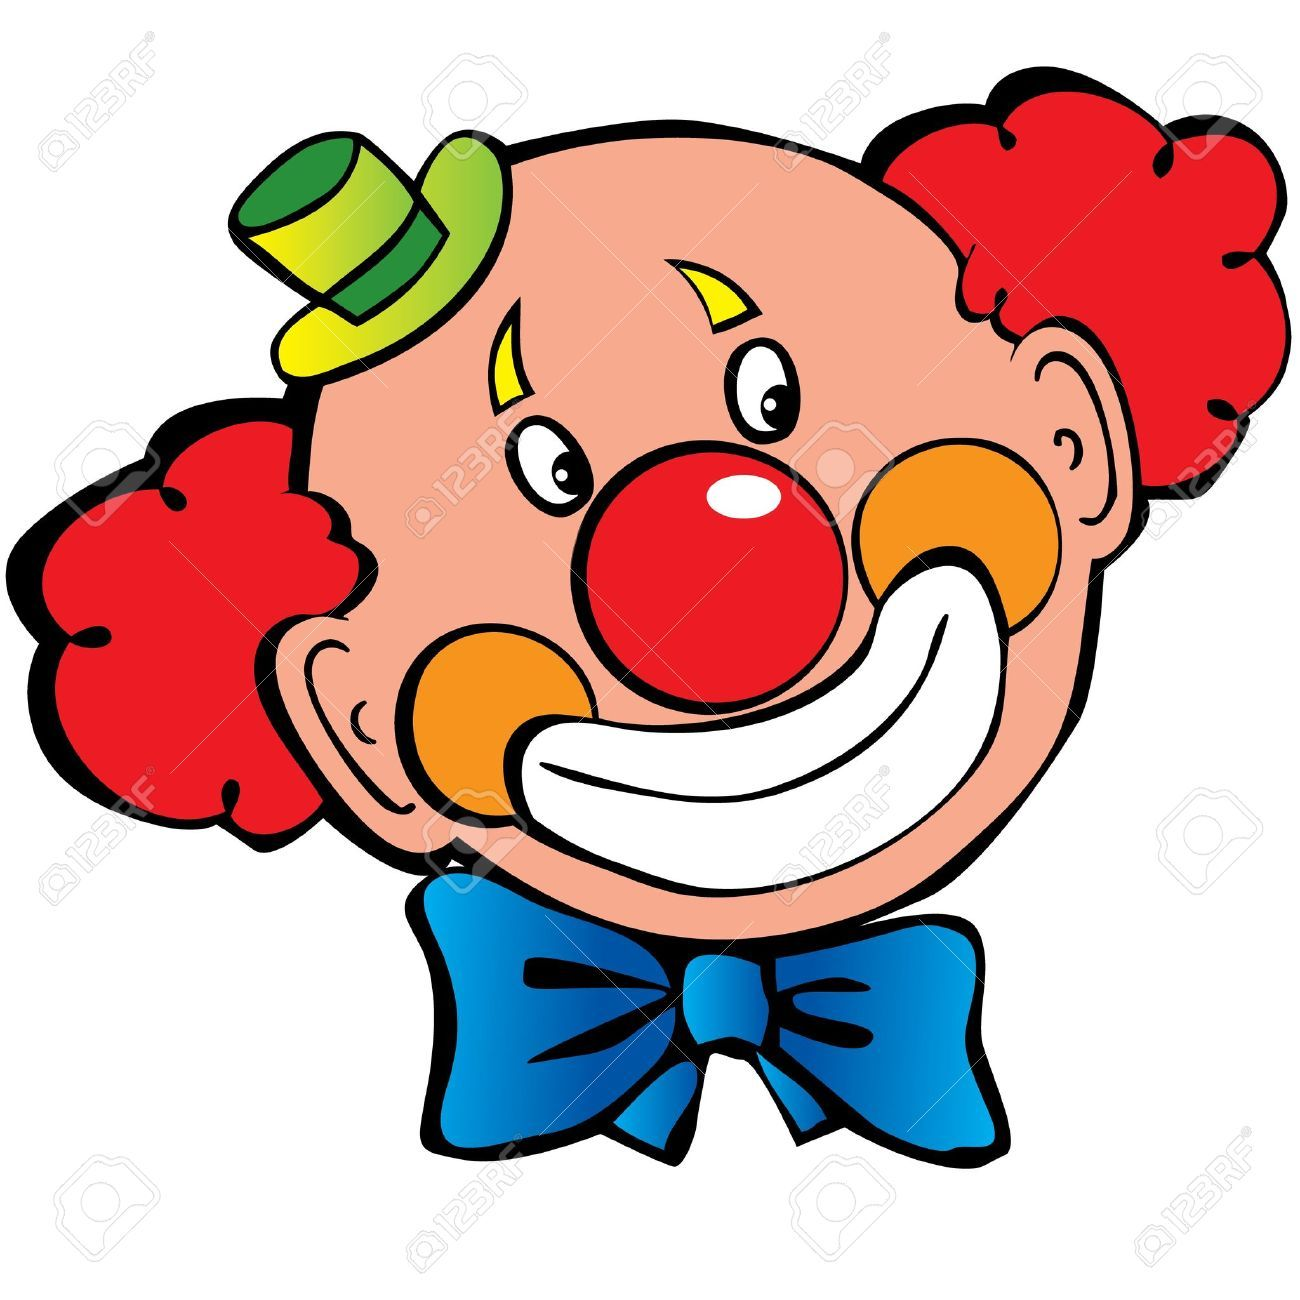 image of clown face clipart 9 free clown clipart 1 page of rh pinterest com clown clipart images clown clipart free